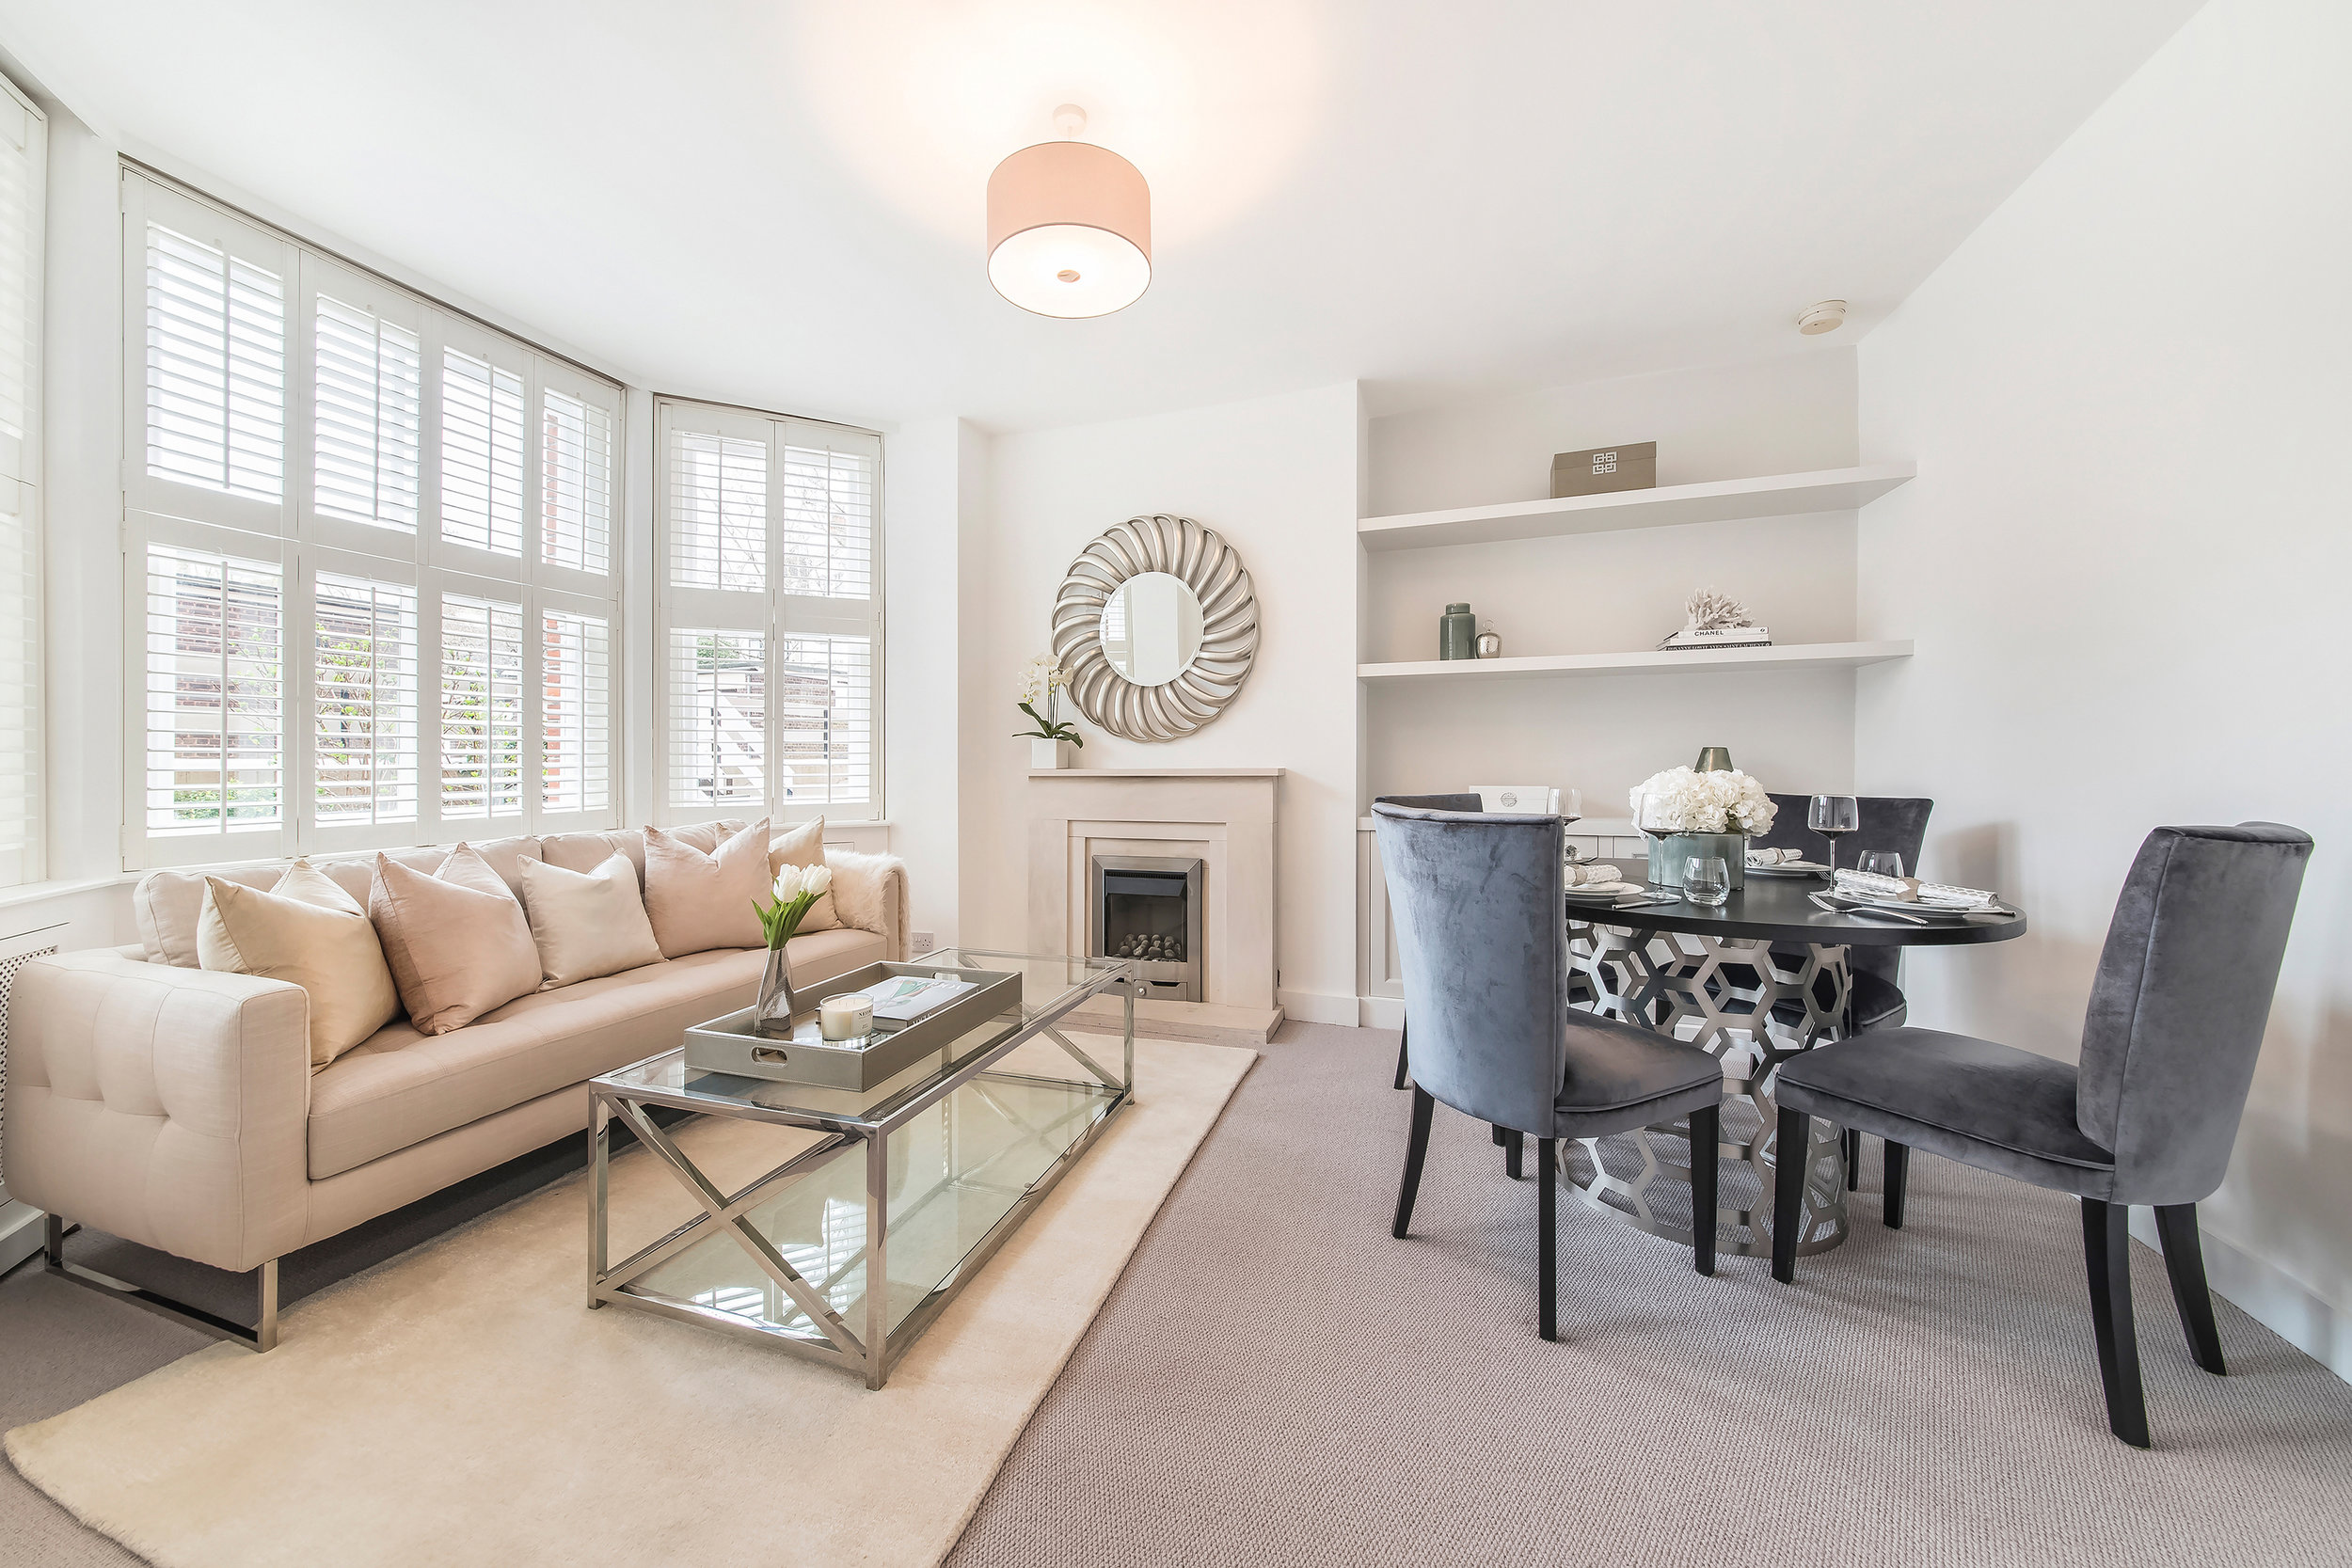 Chestertons_Fulham Flat_Yohan May Home Staging.jpg